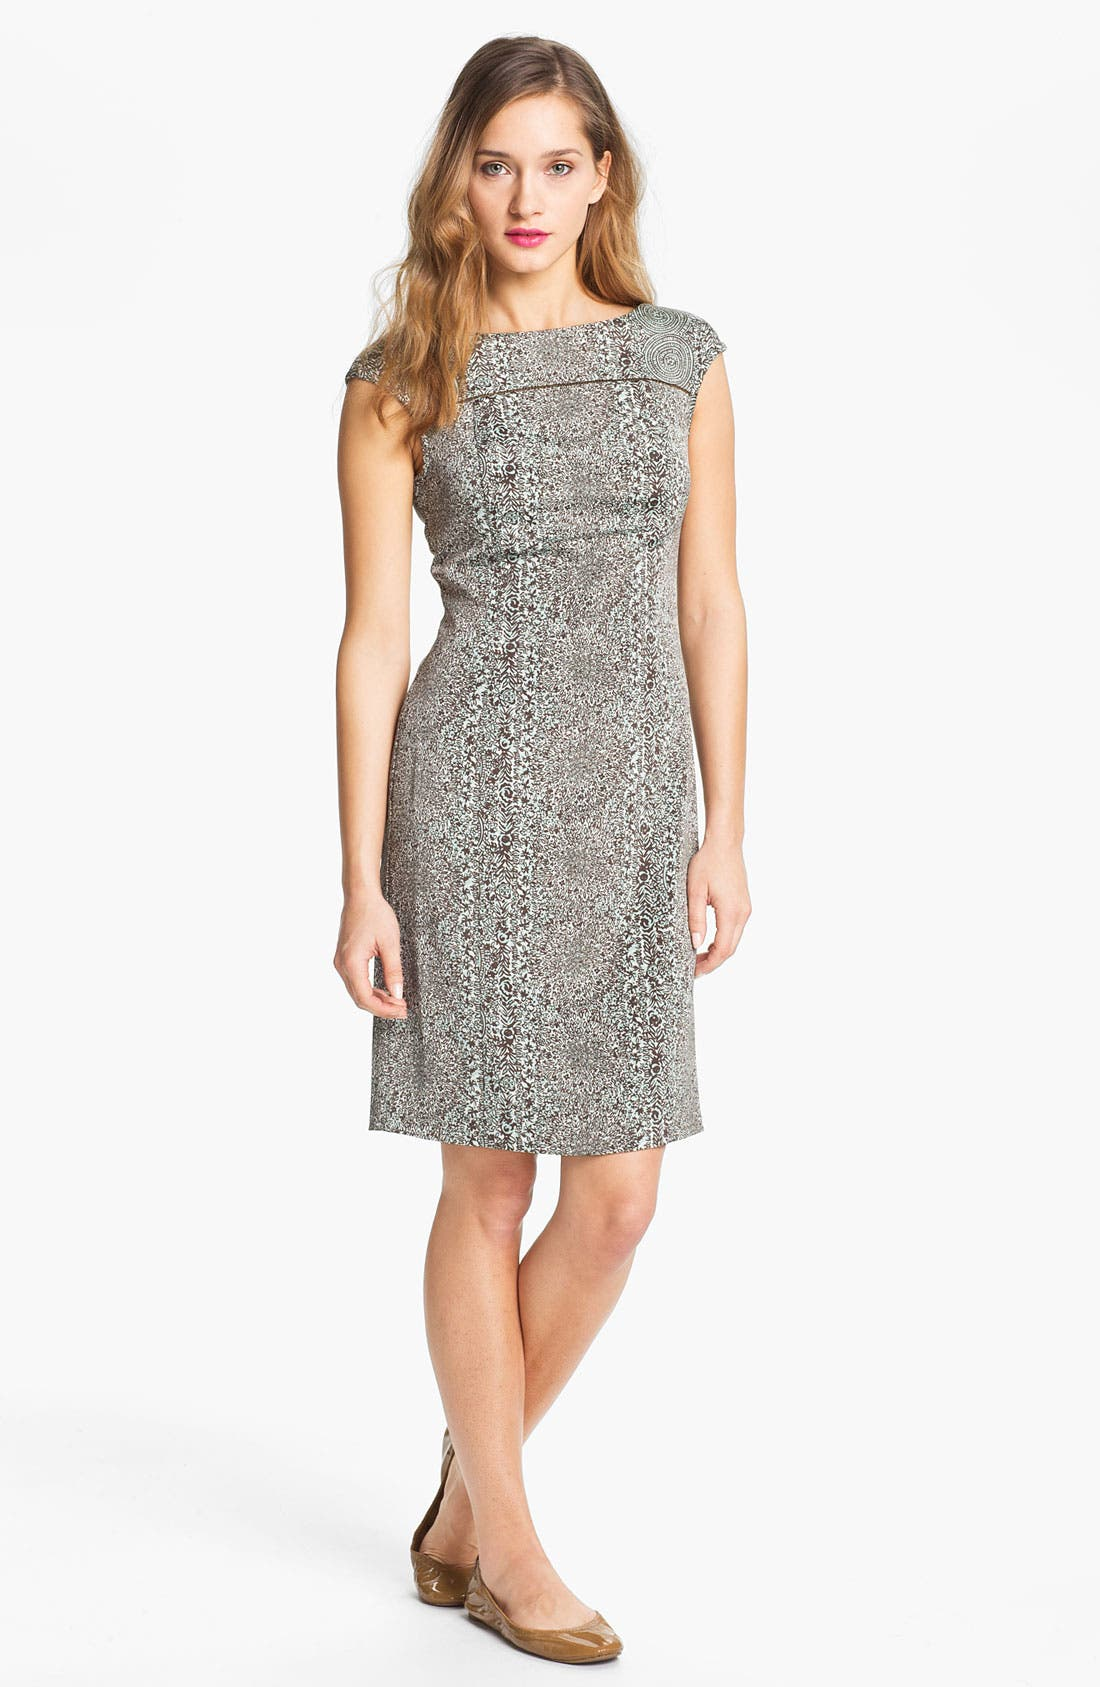 Alternate Image 1 Selected - Tory Burch 'Carter' Print Sheath Dress